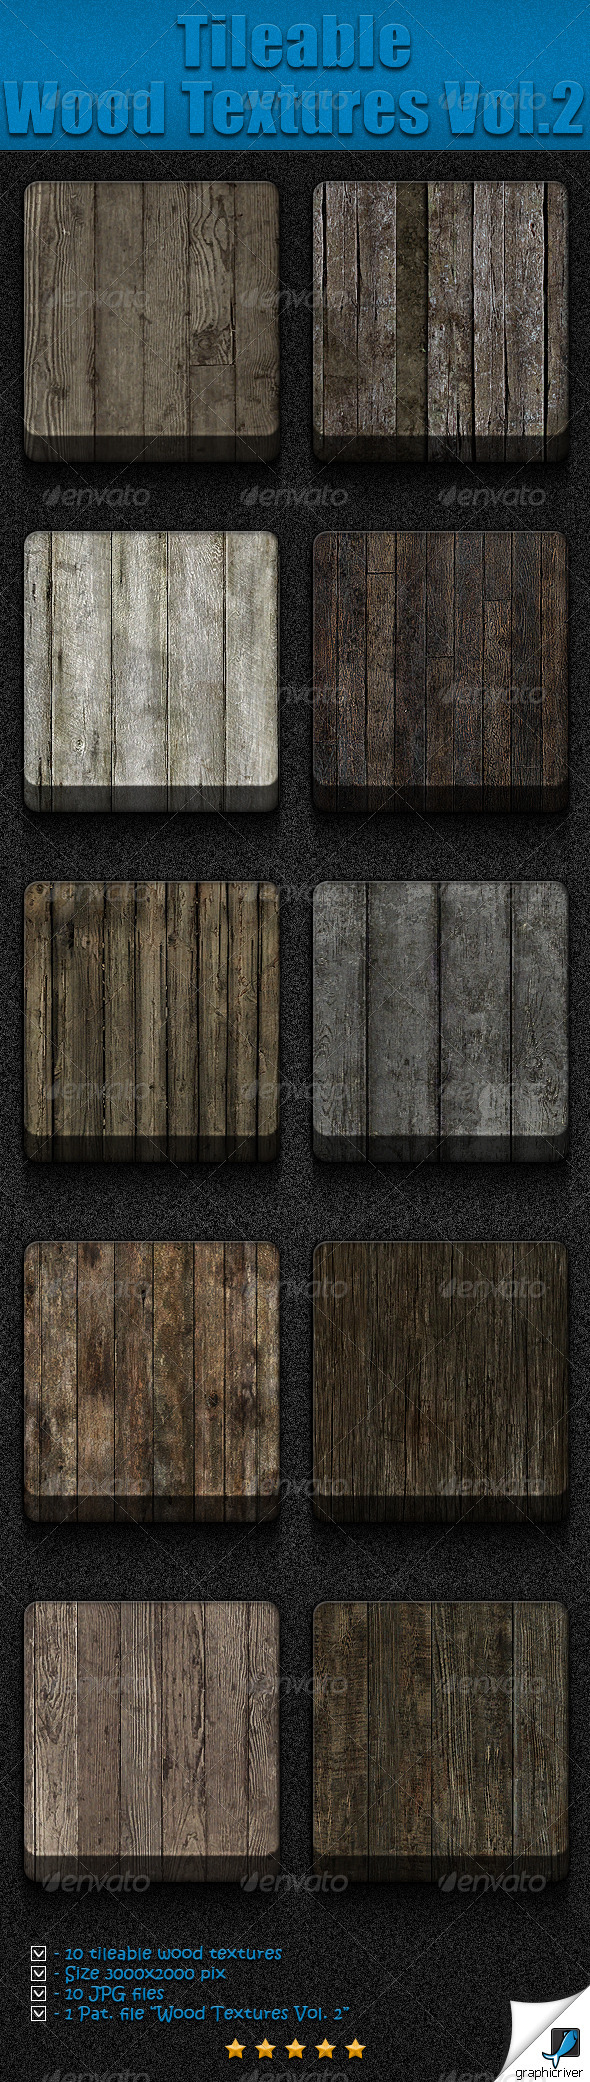 Tileable Wood Textures Vol 2